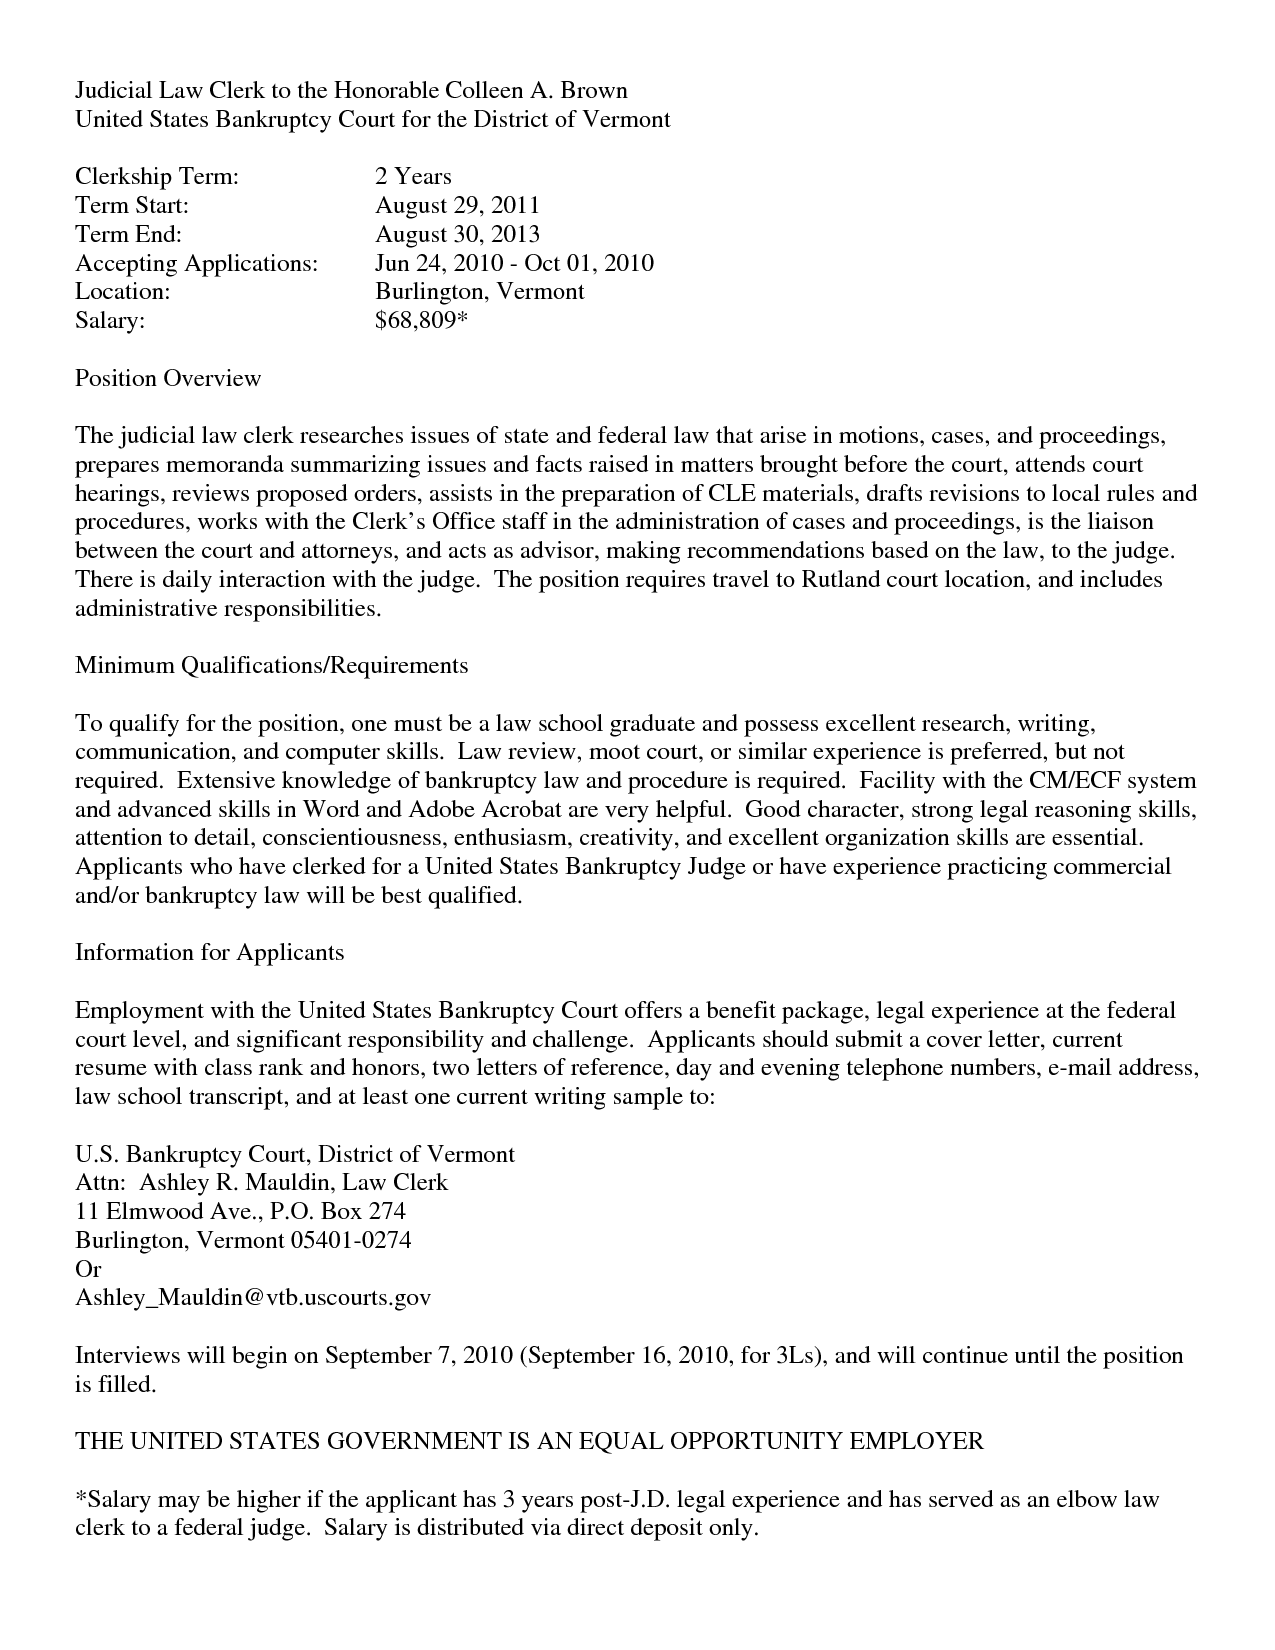 Job application letter ending writing a cover letter for a job application examples altavistaventures Gallery